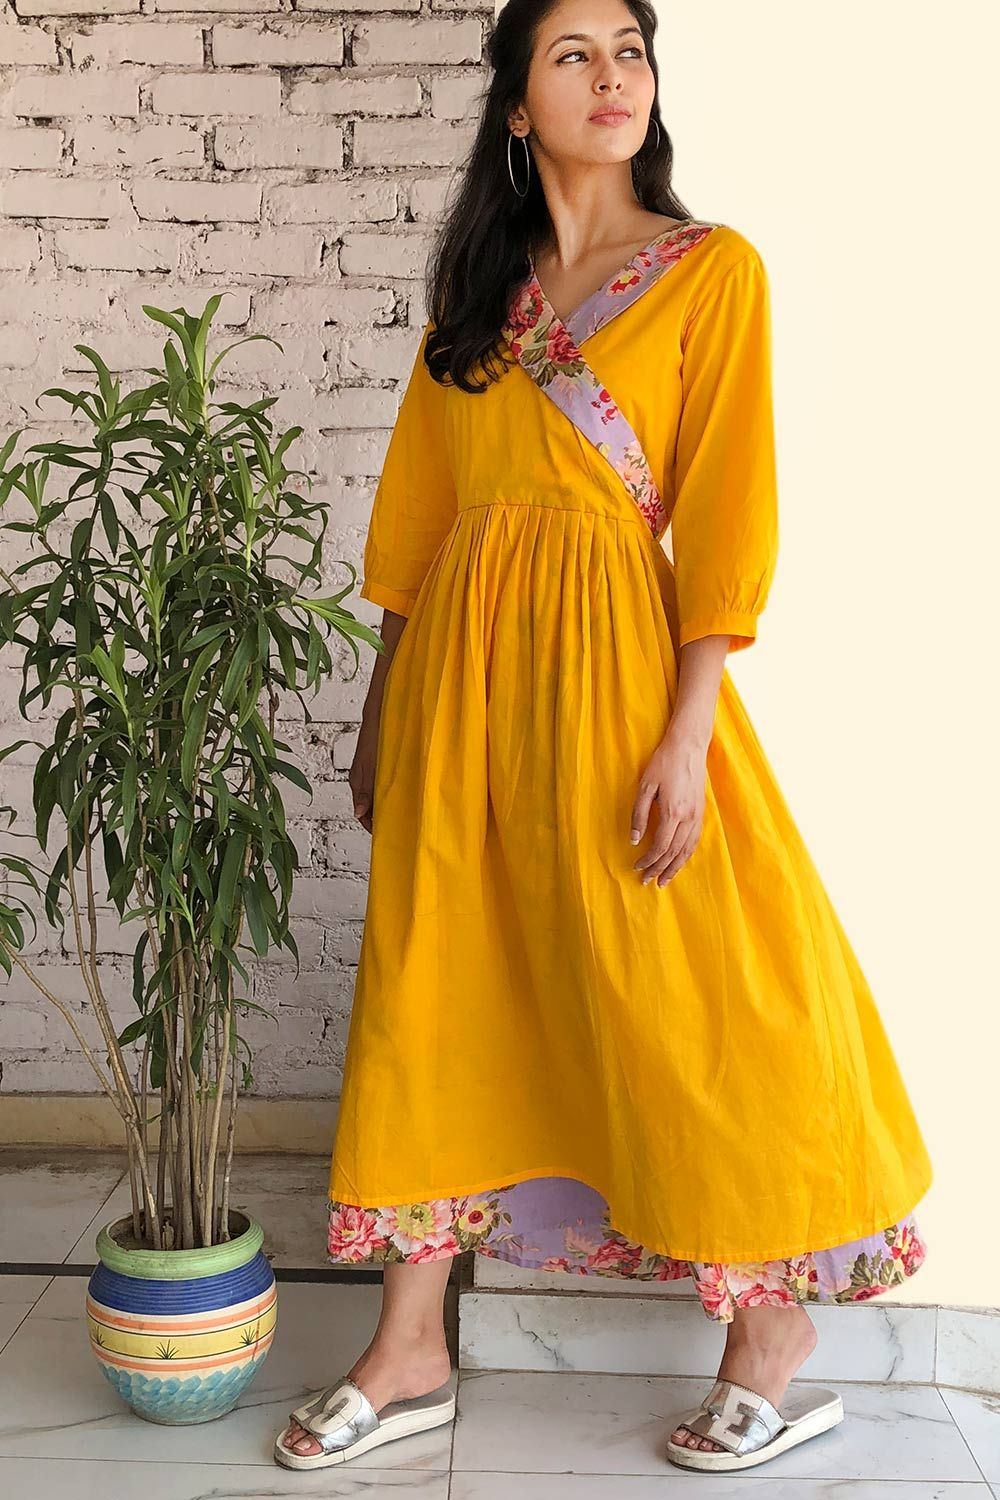 Candlelight double layered maxi dress enjoy the warm weather in